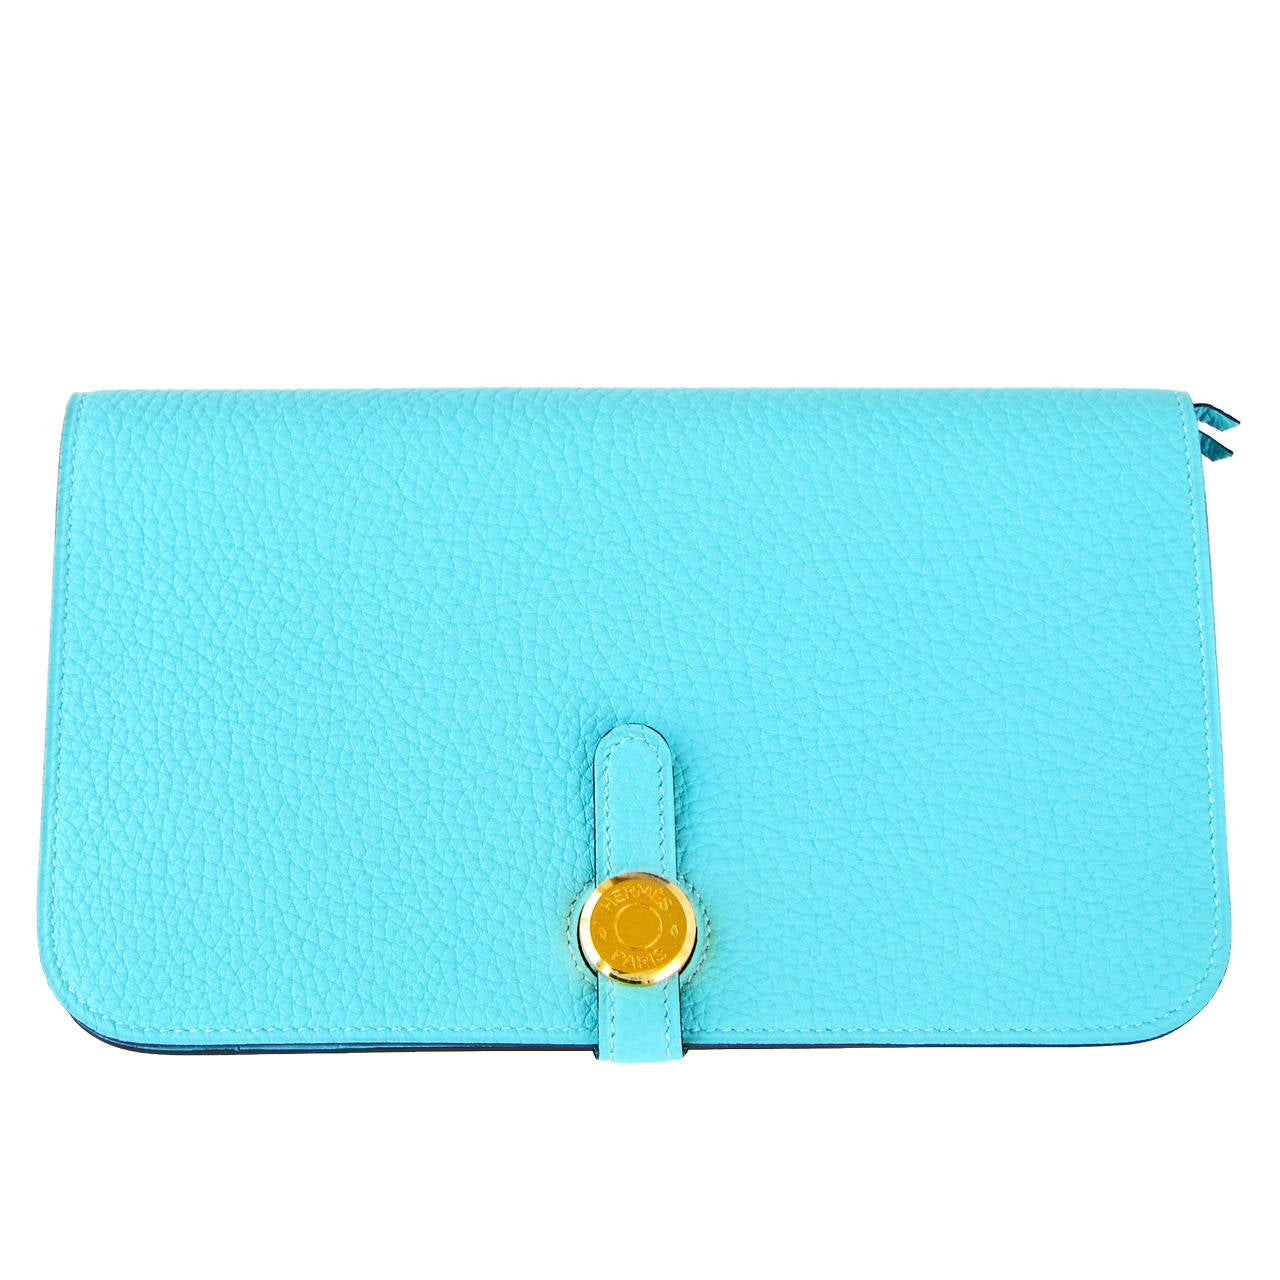 where are brighton purses made - Hermes Blue Atoll Gold Hardware Togo Dogon Duo Leather Wallet ...